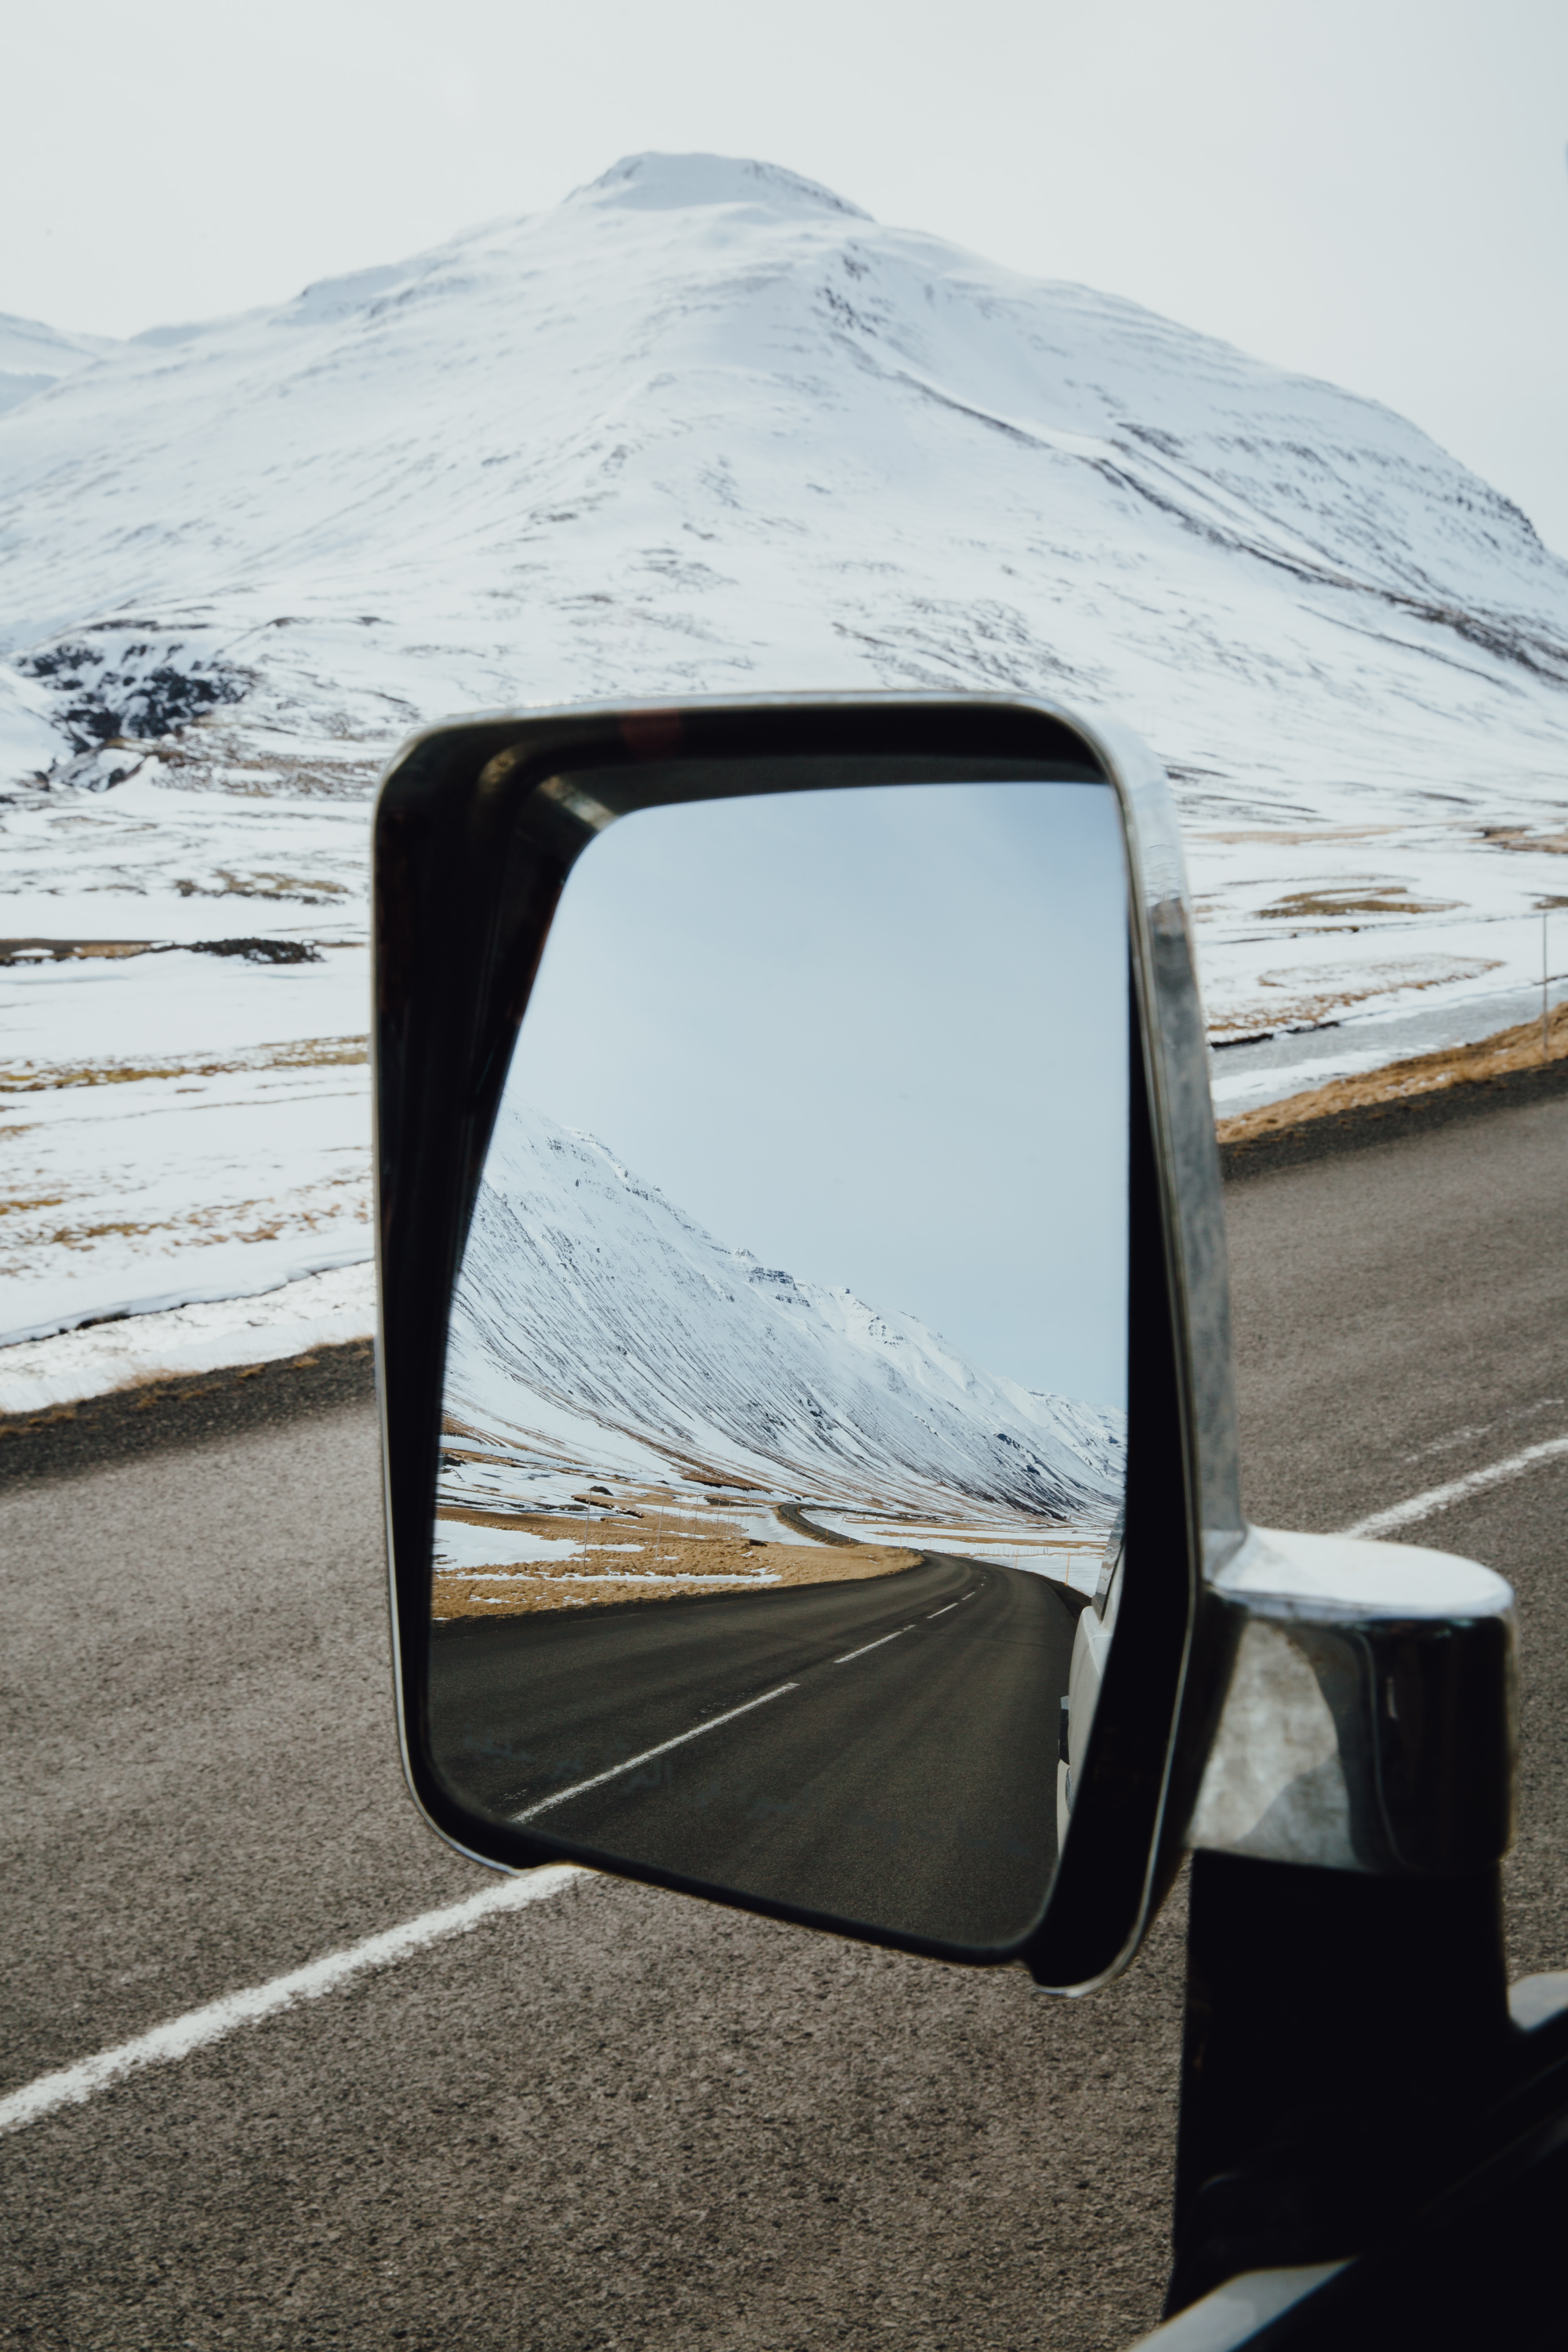 MikeSeehagel-commercial-lifestyle-photography-iceland-IMG_0794.jpg